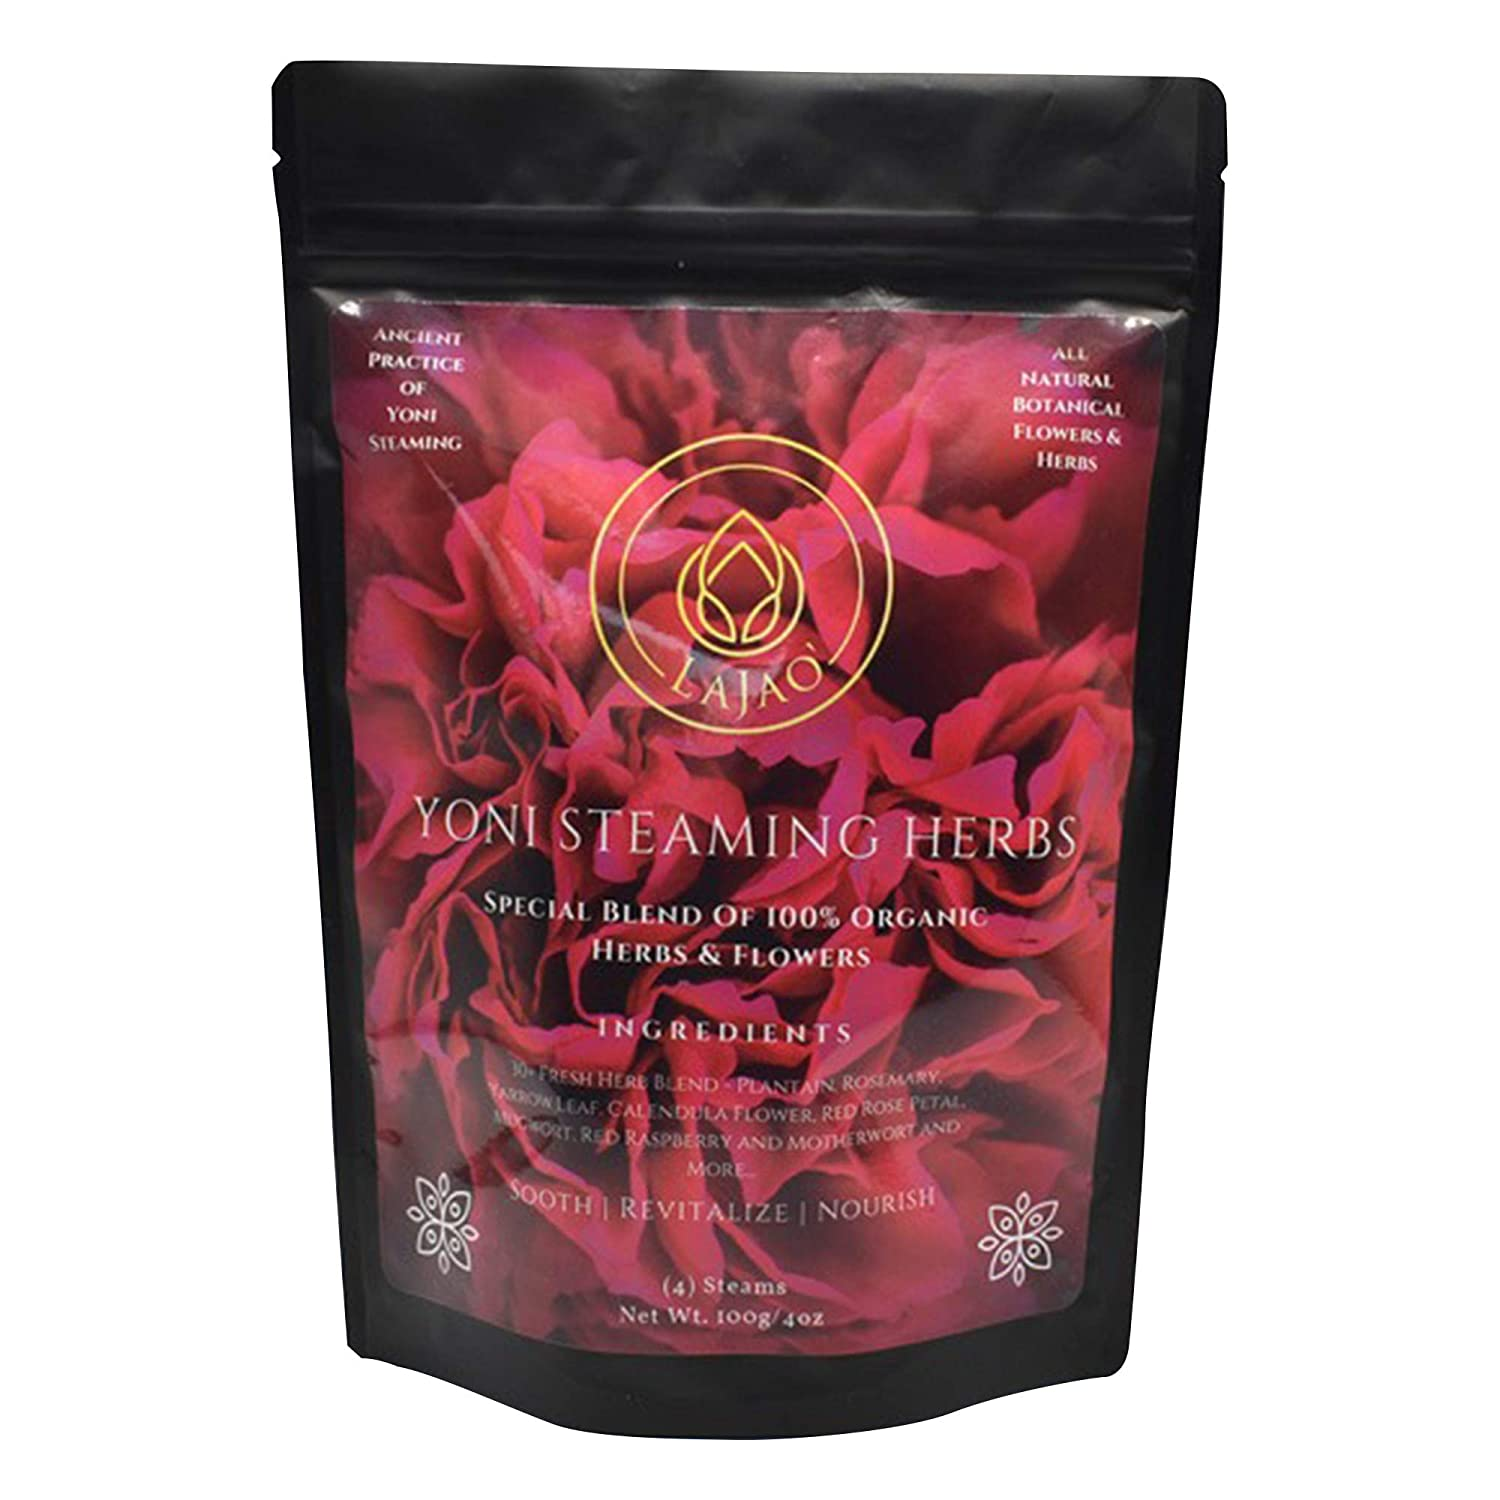 LaJao Yoni Steaming Herbs for V Steam, Herbal Steaming for Women, 4 Ounce (4-8 Steams) Vaginal Steam Home Spa, Natural 100% Organic Herbal Blend for Menstrual Cycle Menopause Fertility, V Steam Detox